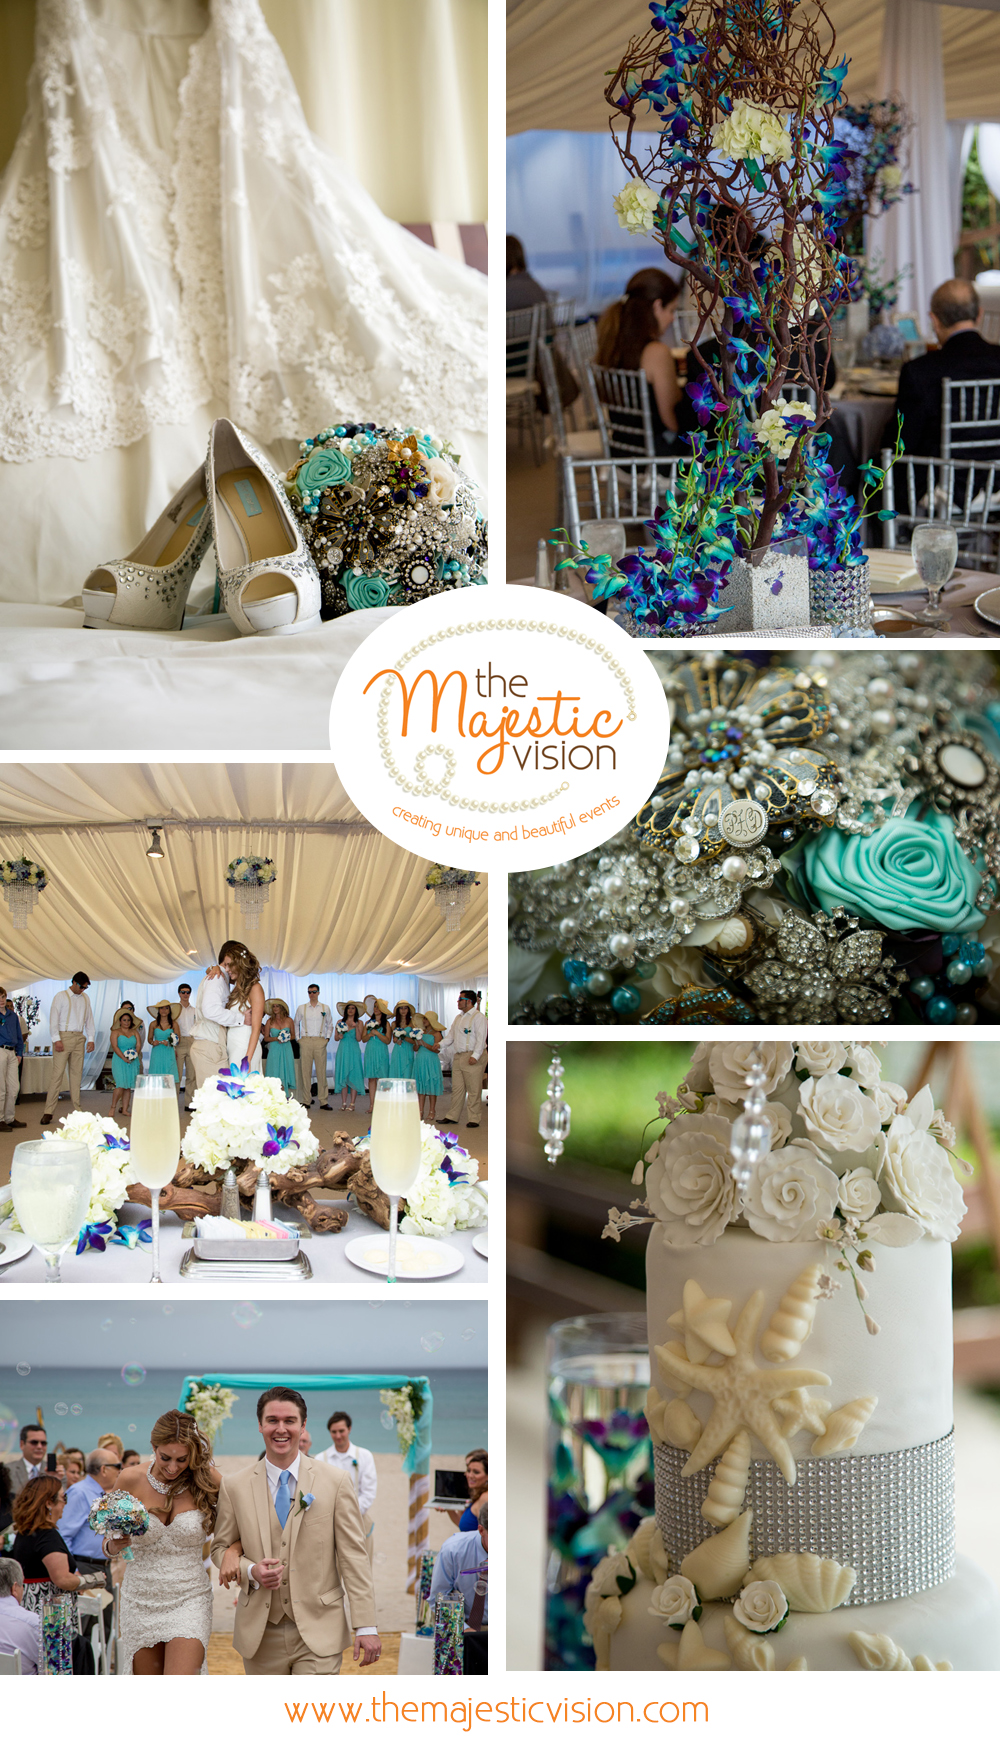 Elegant Beach Wedding | The Majestic Vision Wedding Planning | Hilton Singer Island in Palm Beach, FL | www.themajesticvision.com | Michael Sterling Photography